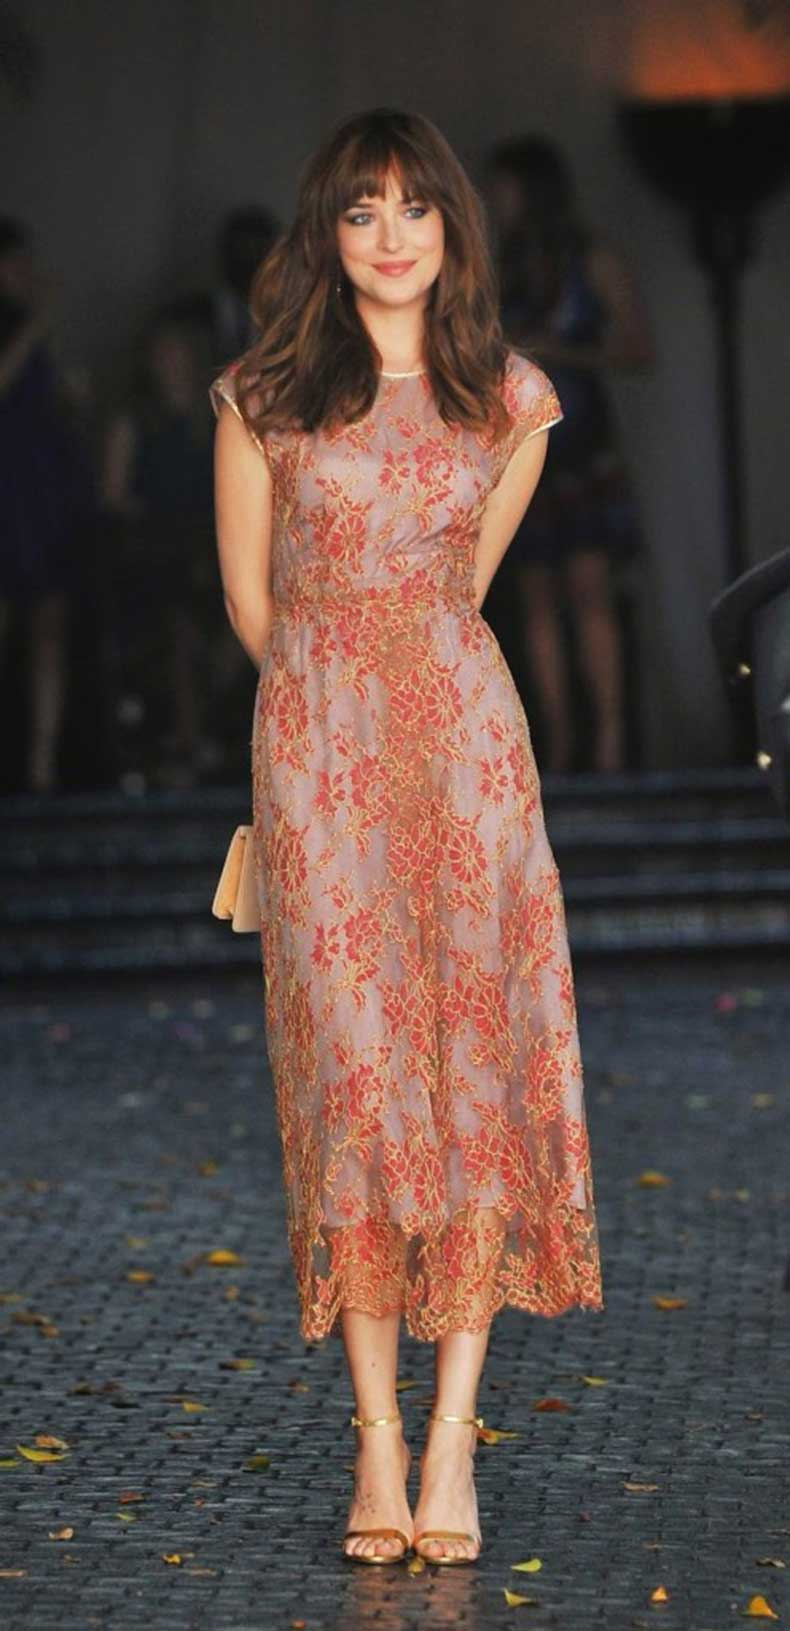 dakota-johnson-pink-lace-dress-gold-sandals-midi-dress-lace-ladylike-spring-via-getty-496x1024